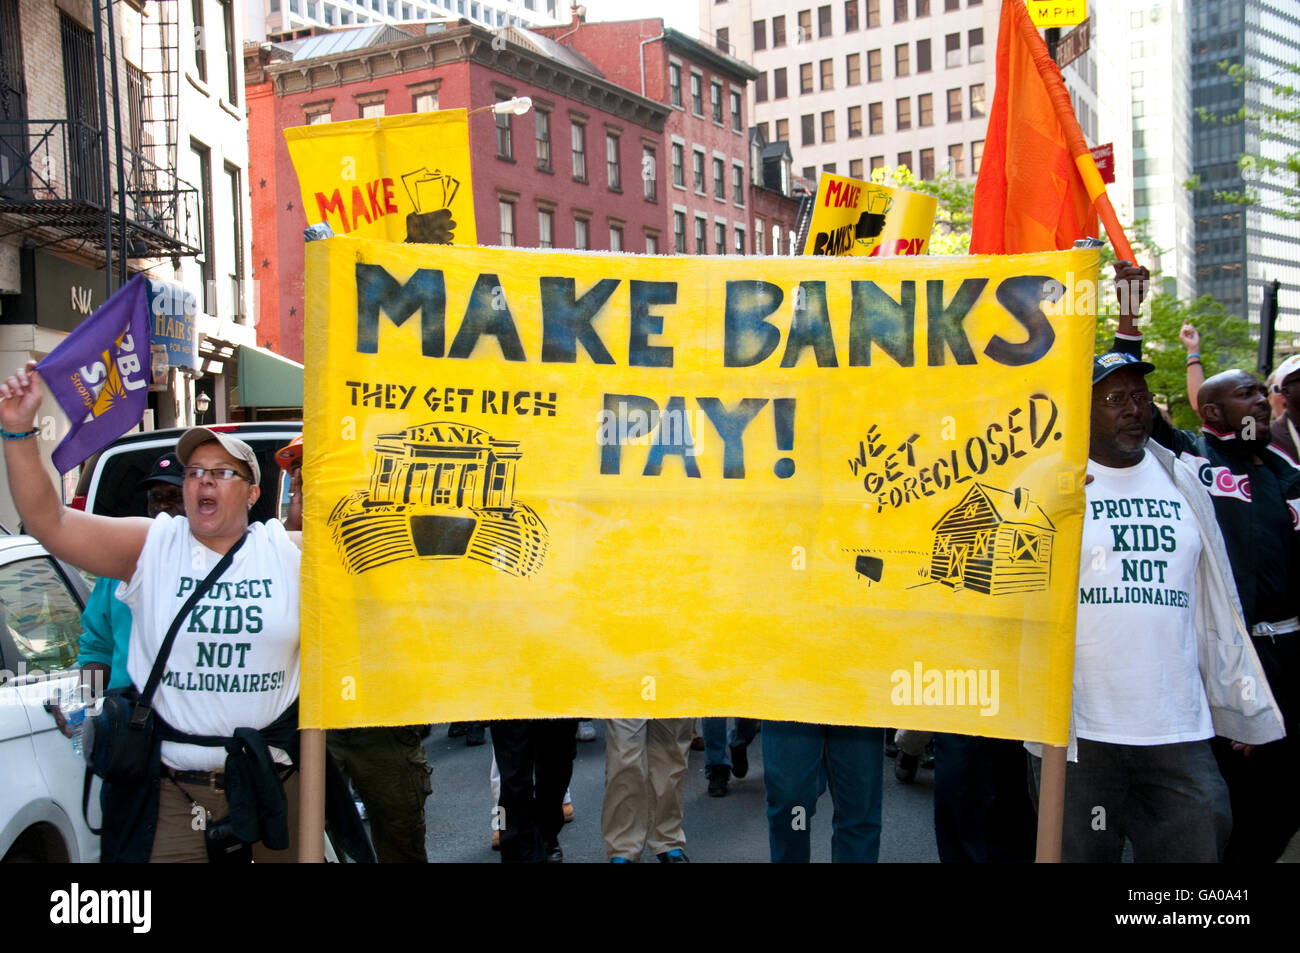 Make banks pay, protest against big banks, war, racial discrimination and in favor of more money for education, - Stock Image